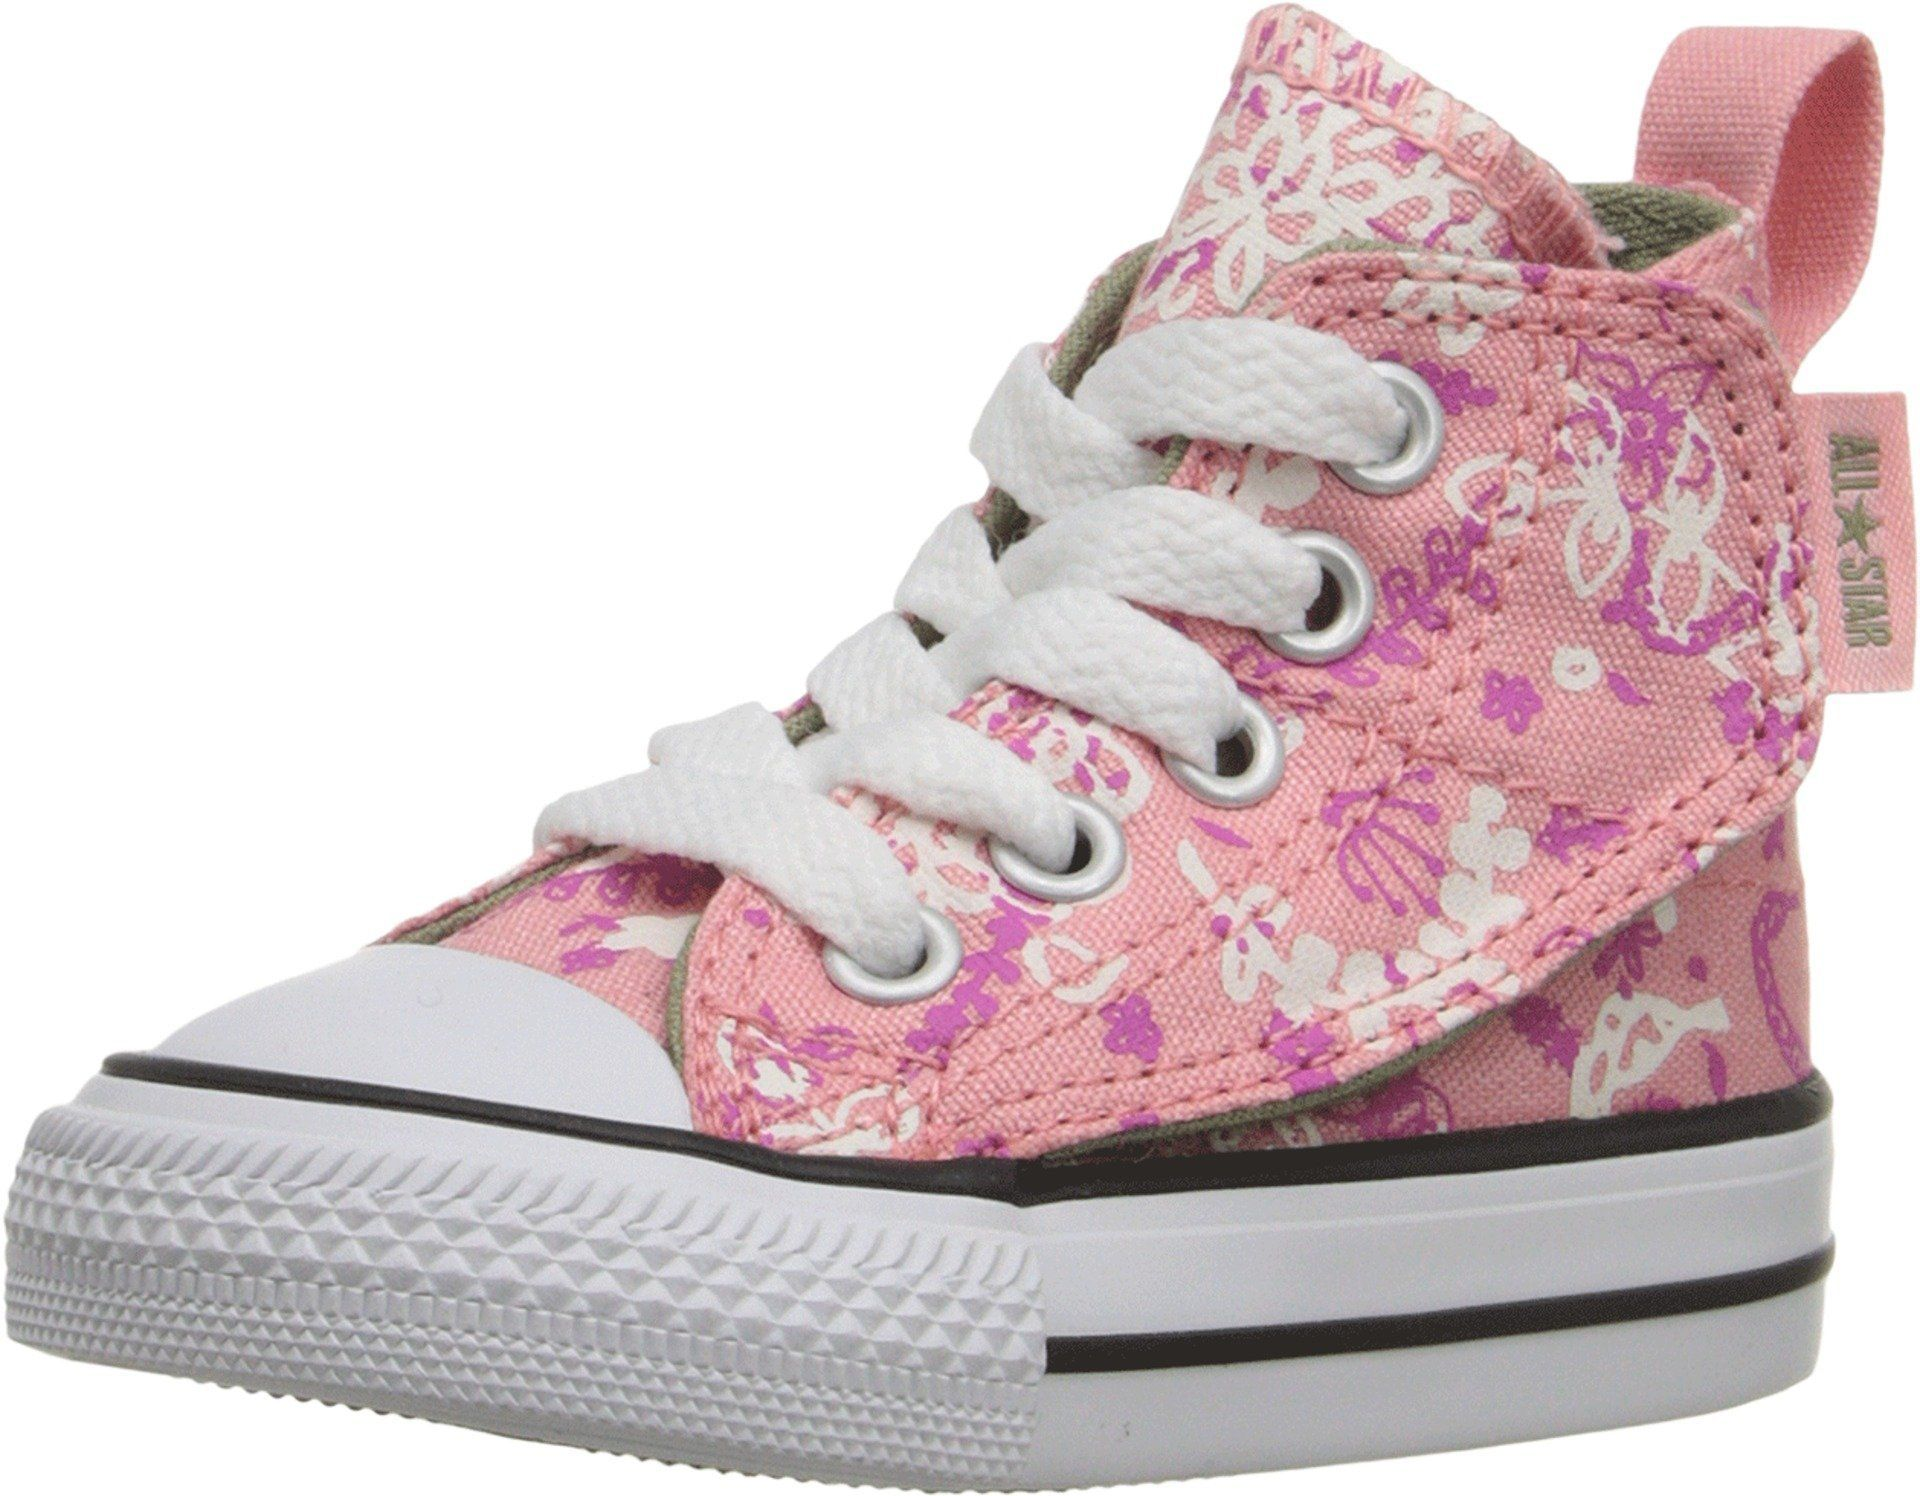 9f5c7178e925 Converse Kids Baby Girl s Chuck Taylor All Star Simple Step (Infant Toddler)  Daybreak Pink Plastic Pink Street Sage 3 Infant M